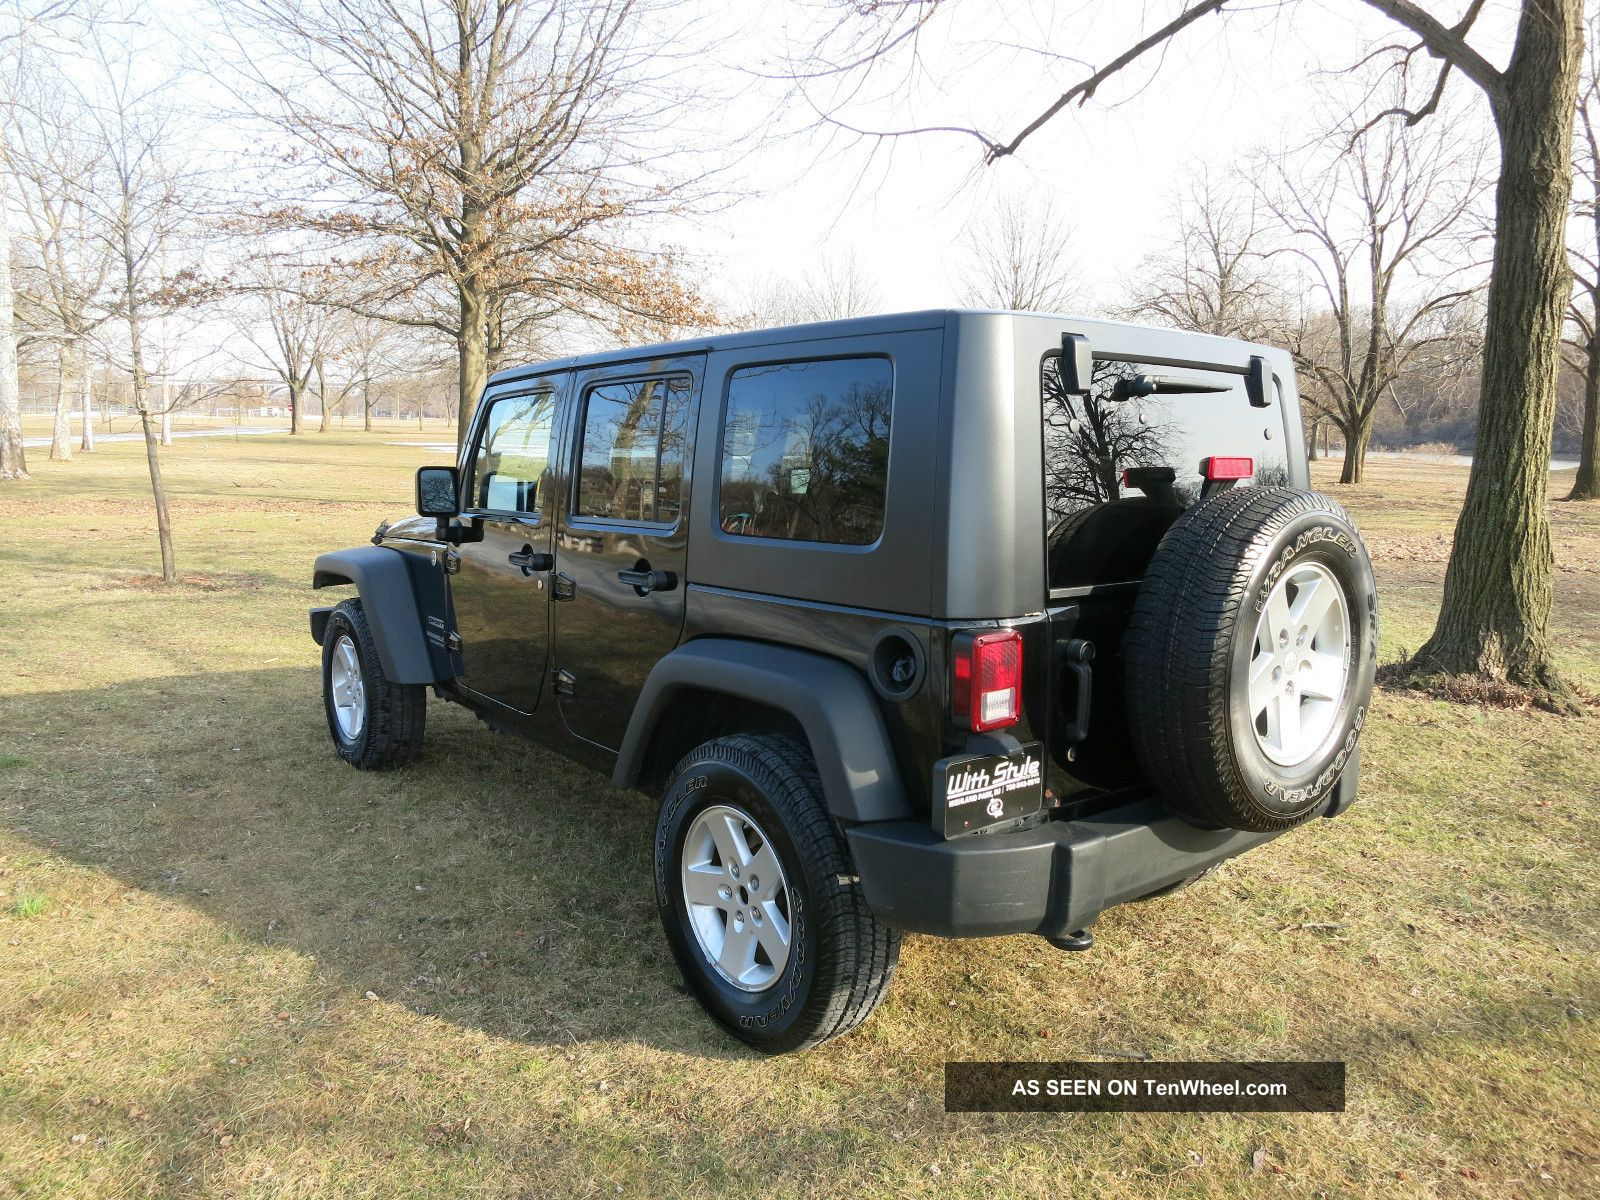 2010 jeep wrangler unlimited sport in hard top wrangler photo 7. Cars Review. Best American Auto & Cars Review